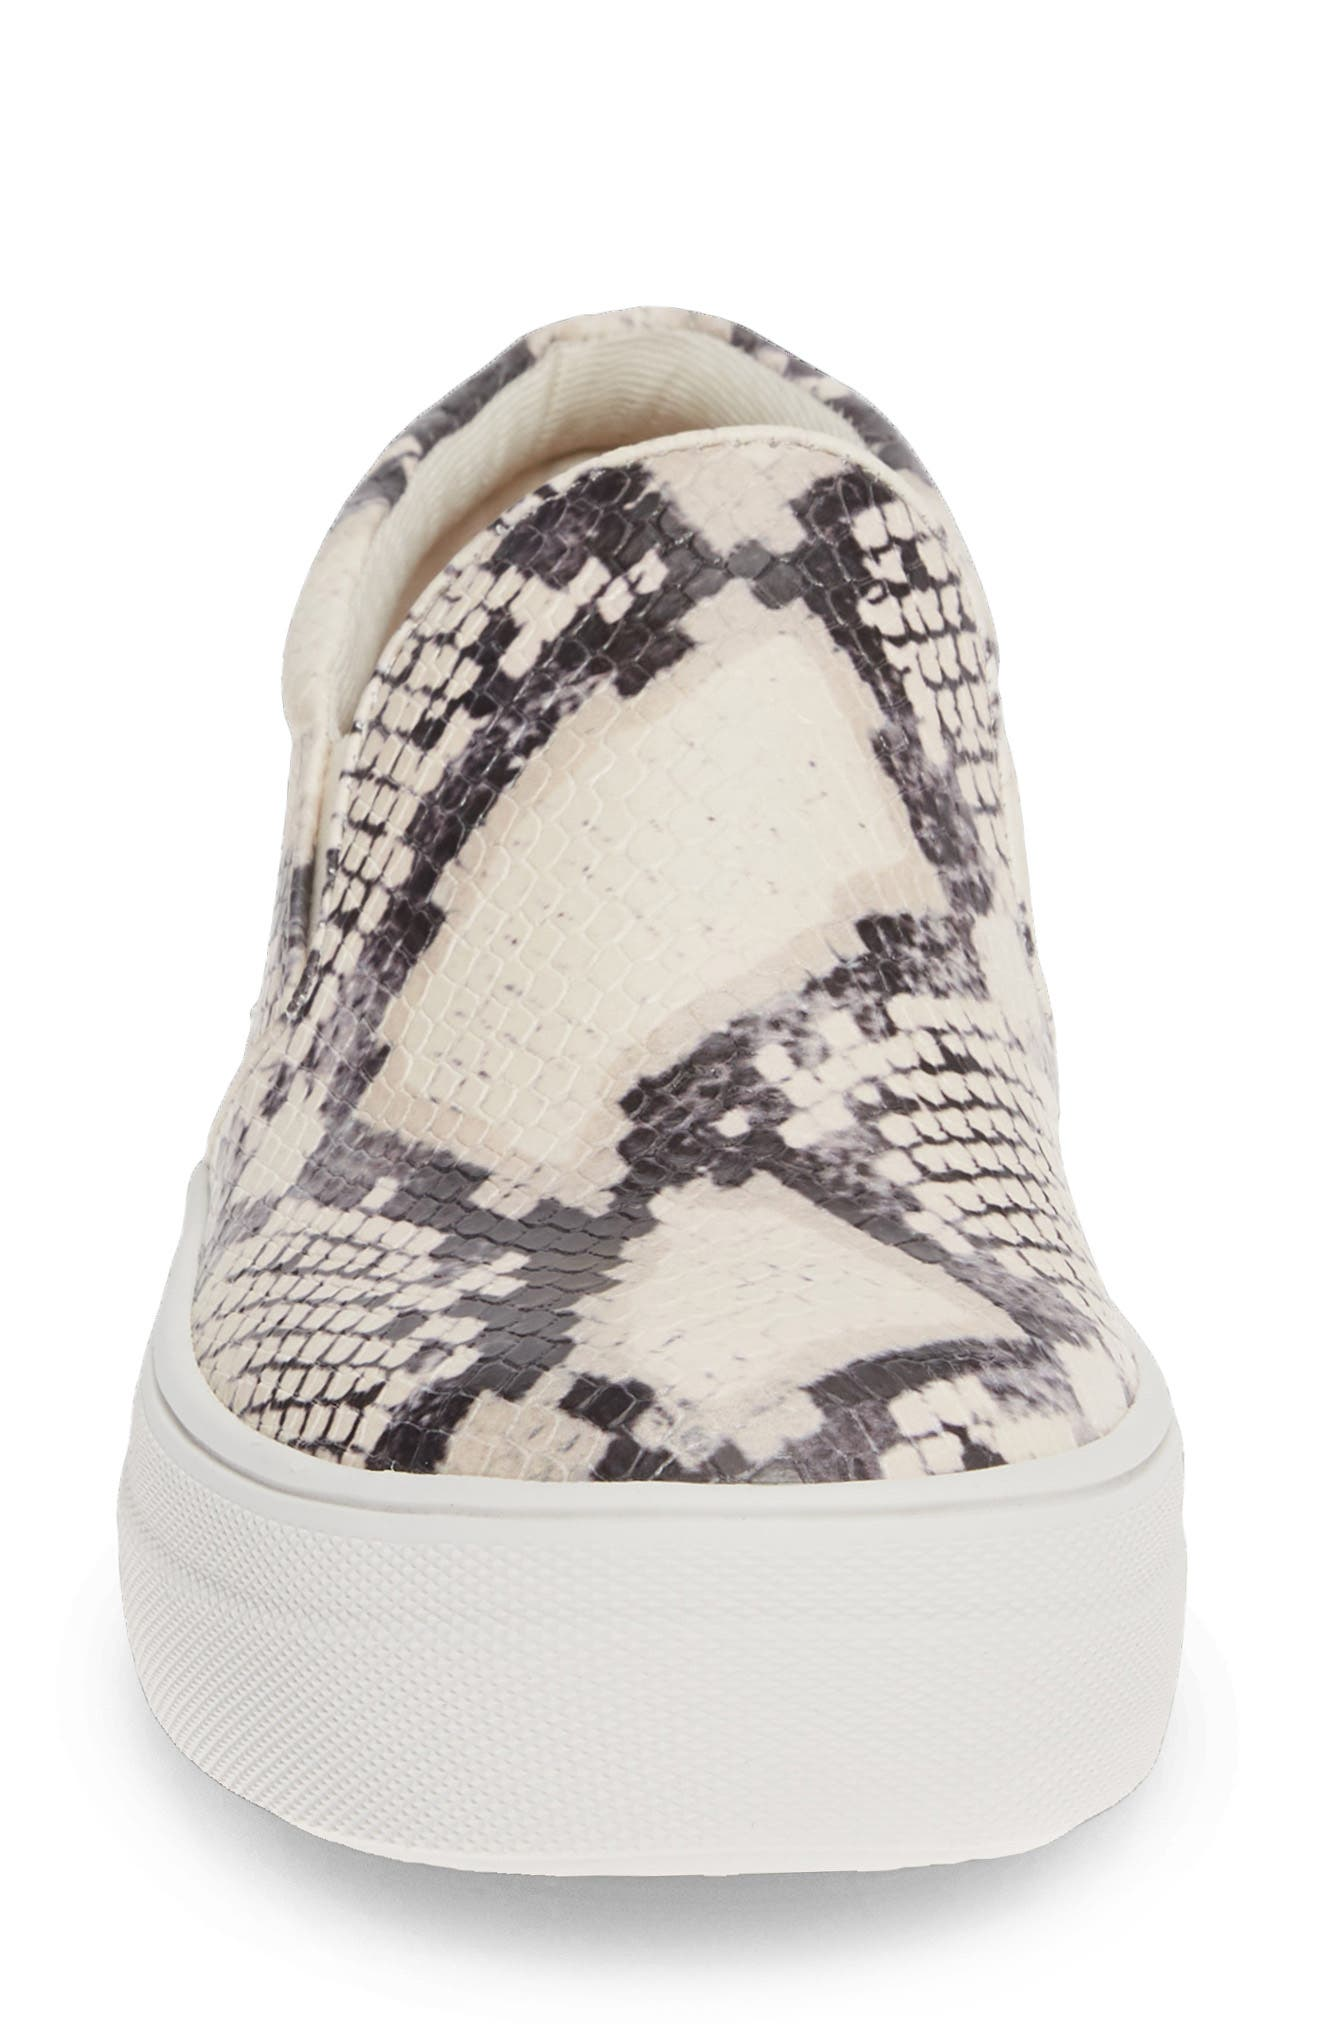 STEVE MADDEN, Gills Platform Slip-On Sneaker, Alternate thumbnail 4, color, BEIGE SNAKE PRINT